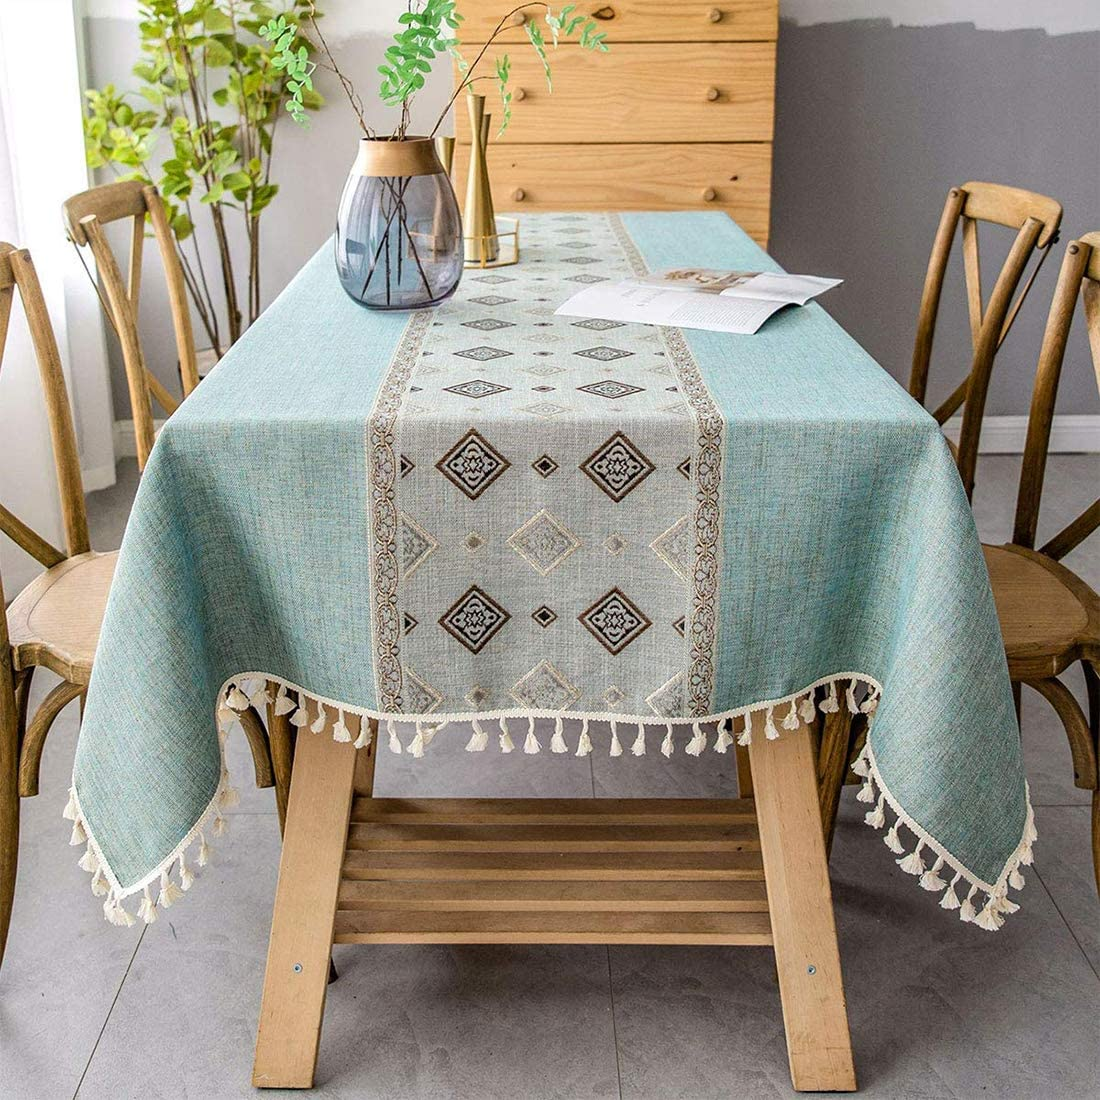 smiry Embroidery Tassel Tablecloth - Cotton Linen Dust-Proof Table Cover for Kitchen Dining Room Party Home Tabletop Decoration (Rectangle/Oblong, 55 x 120 Inch, Light Green)